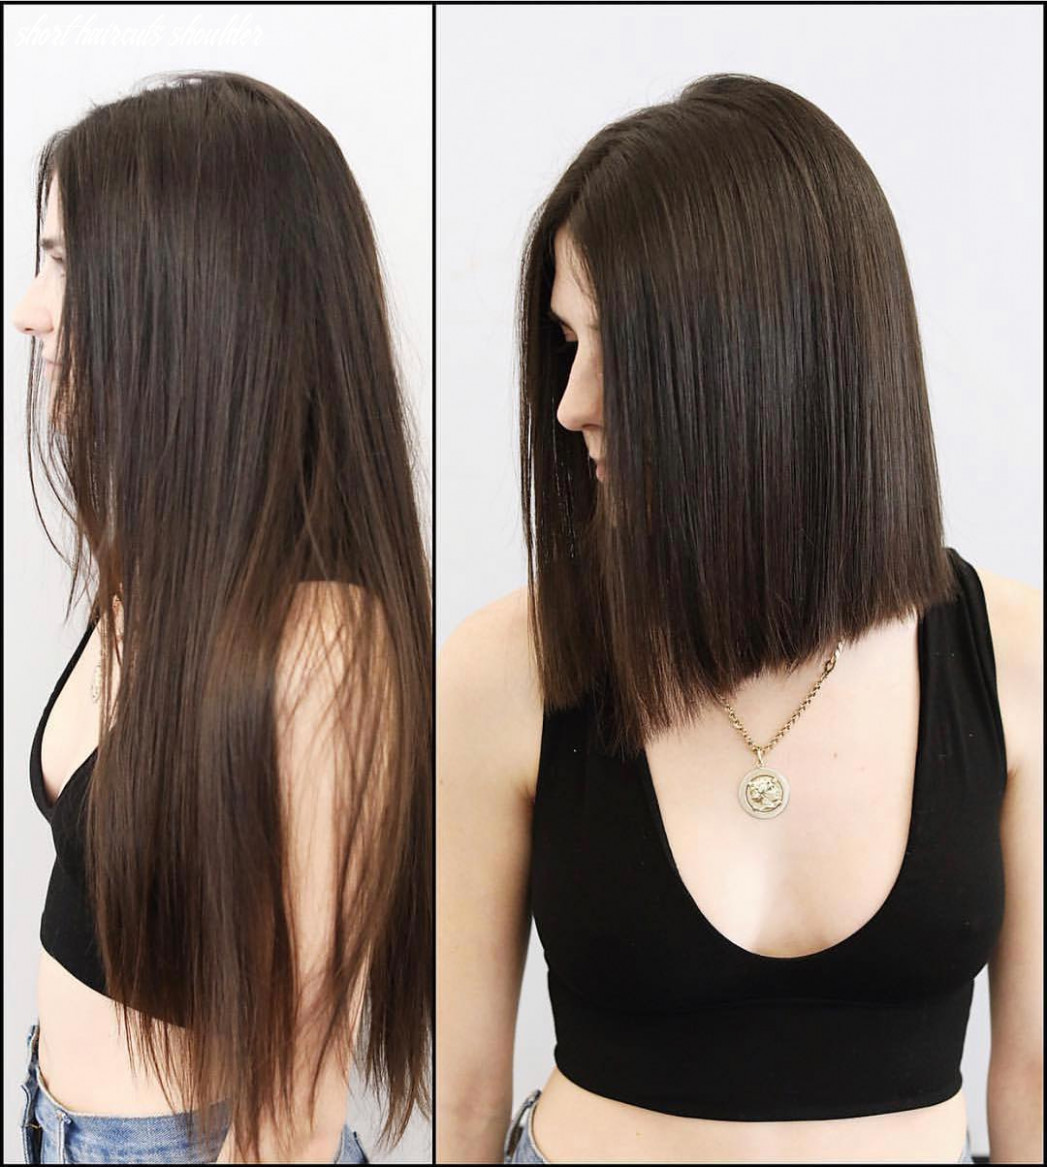 12 Medium Shoulder Length Short Haircuts For Women 12